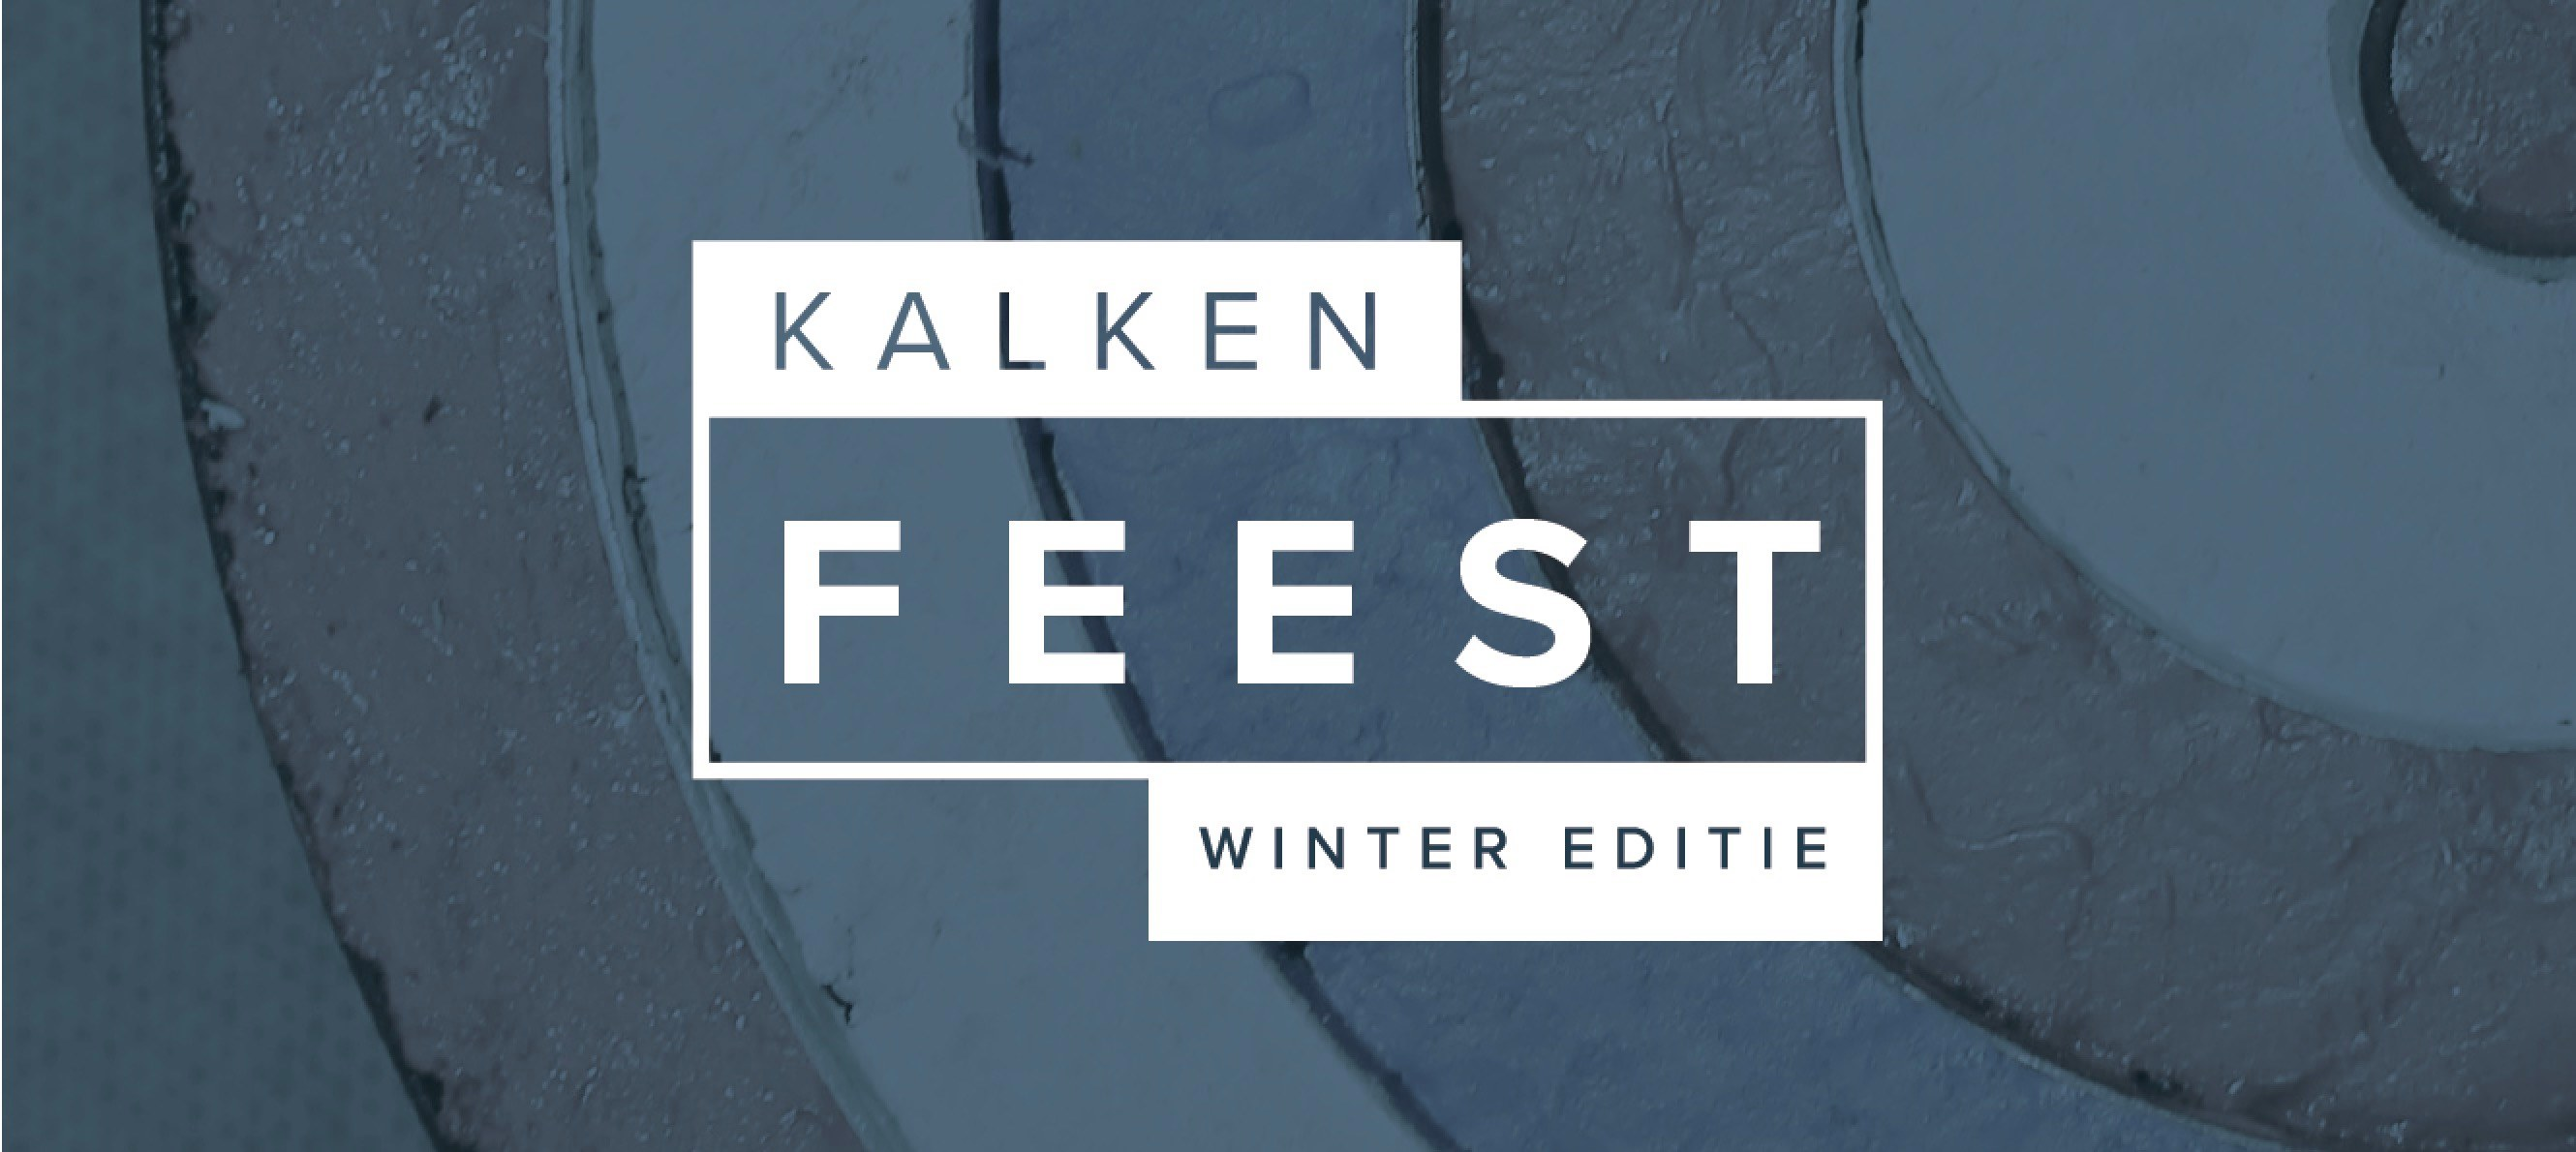 VC Kalken Winter 2020: Ribbetjesfestijn & Vogelpiek